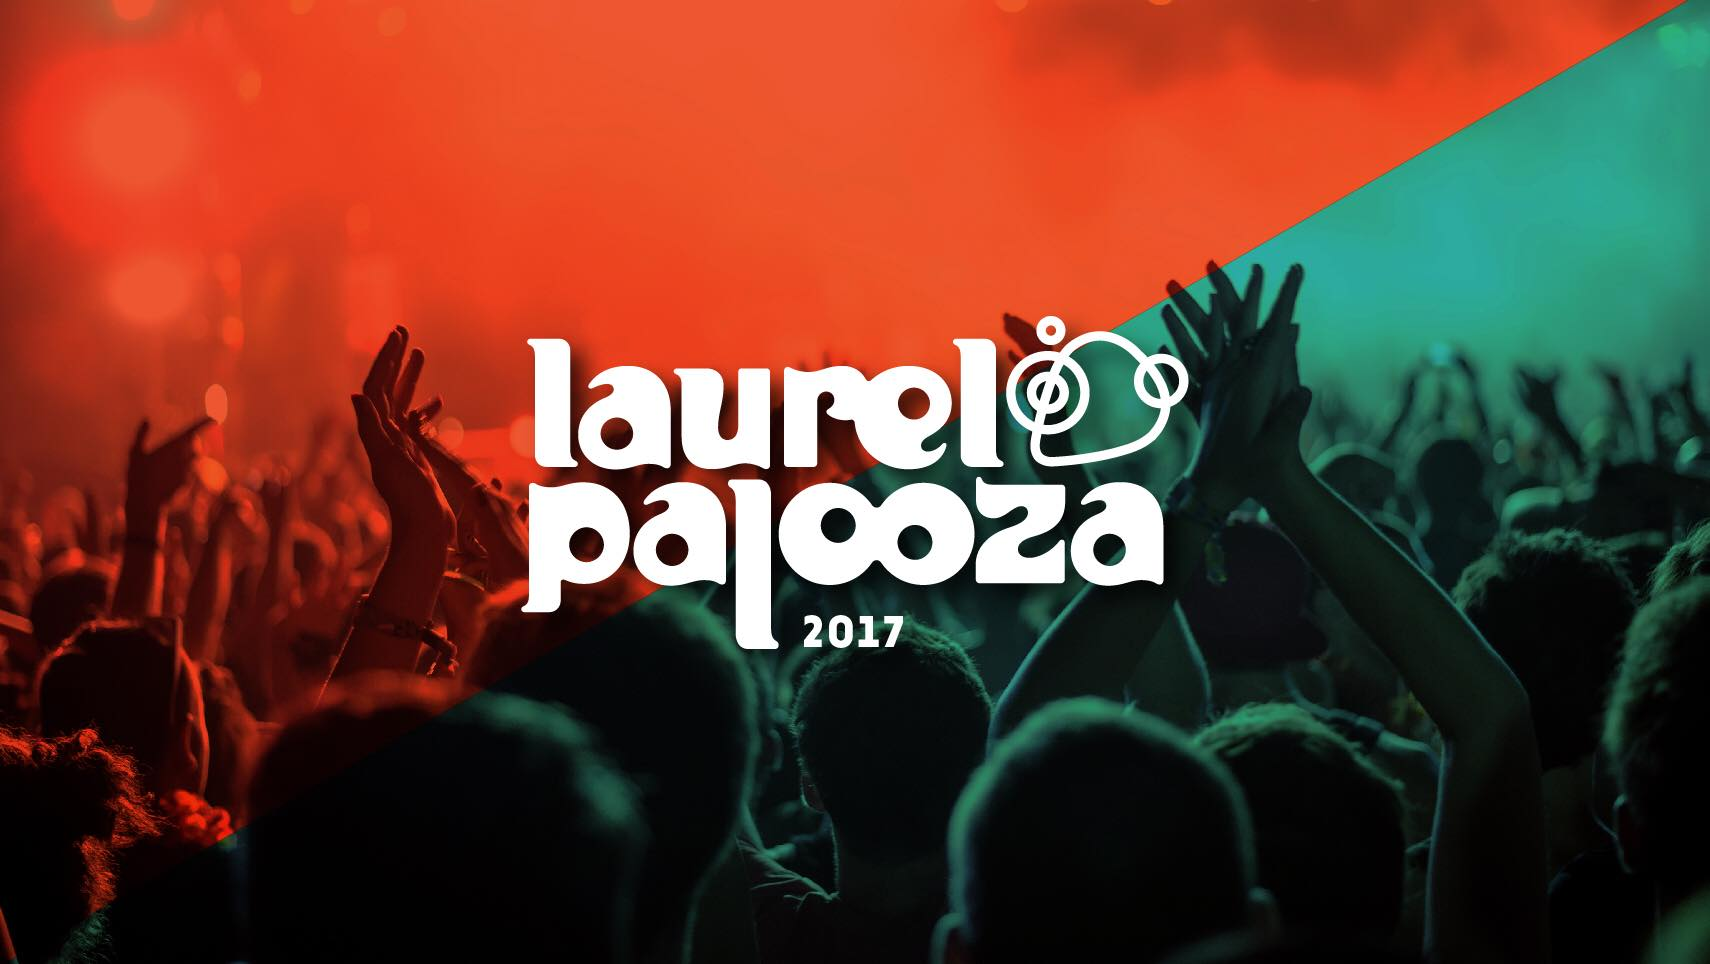 The City of Laurel, Laurelpalooza 2017